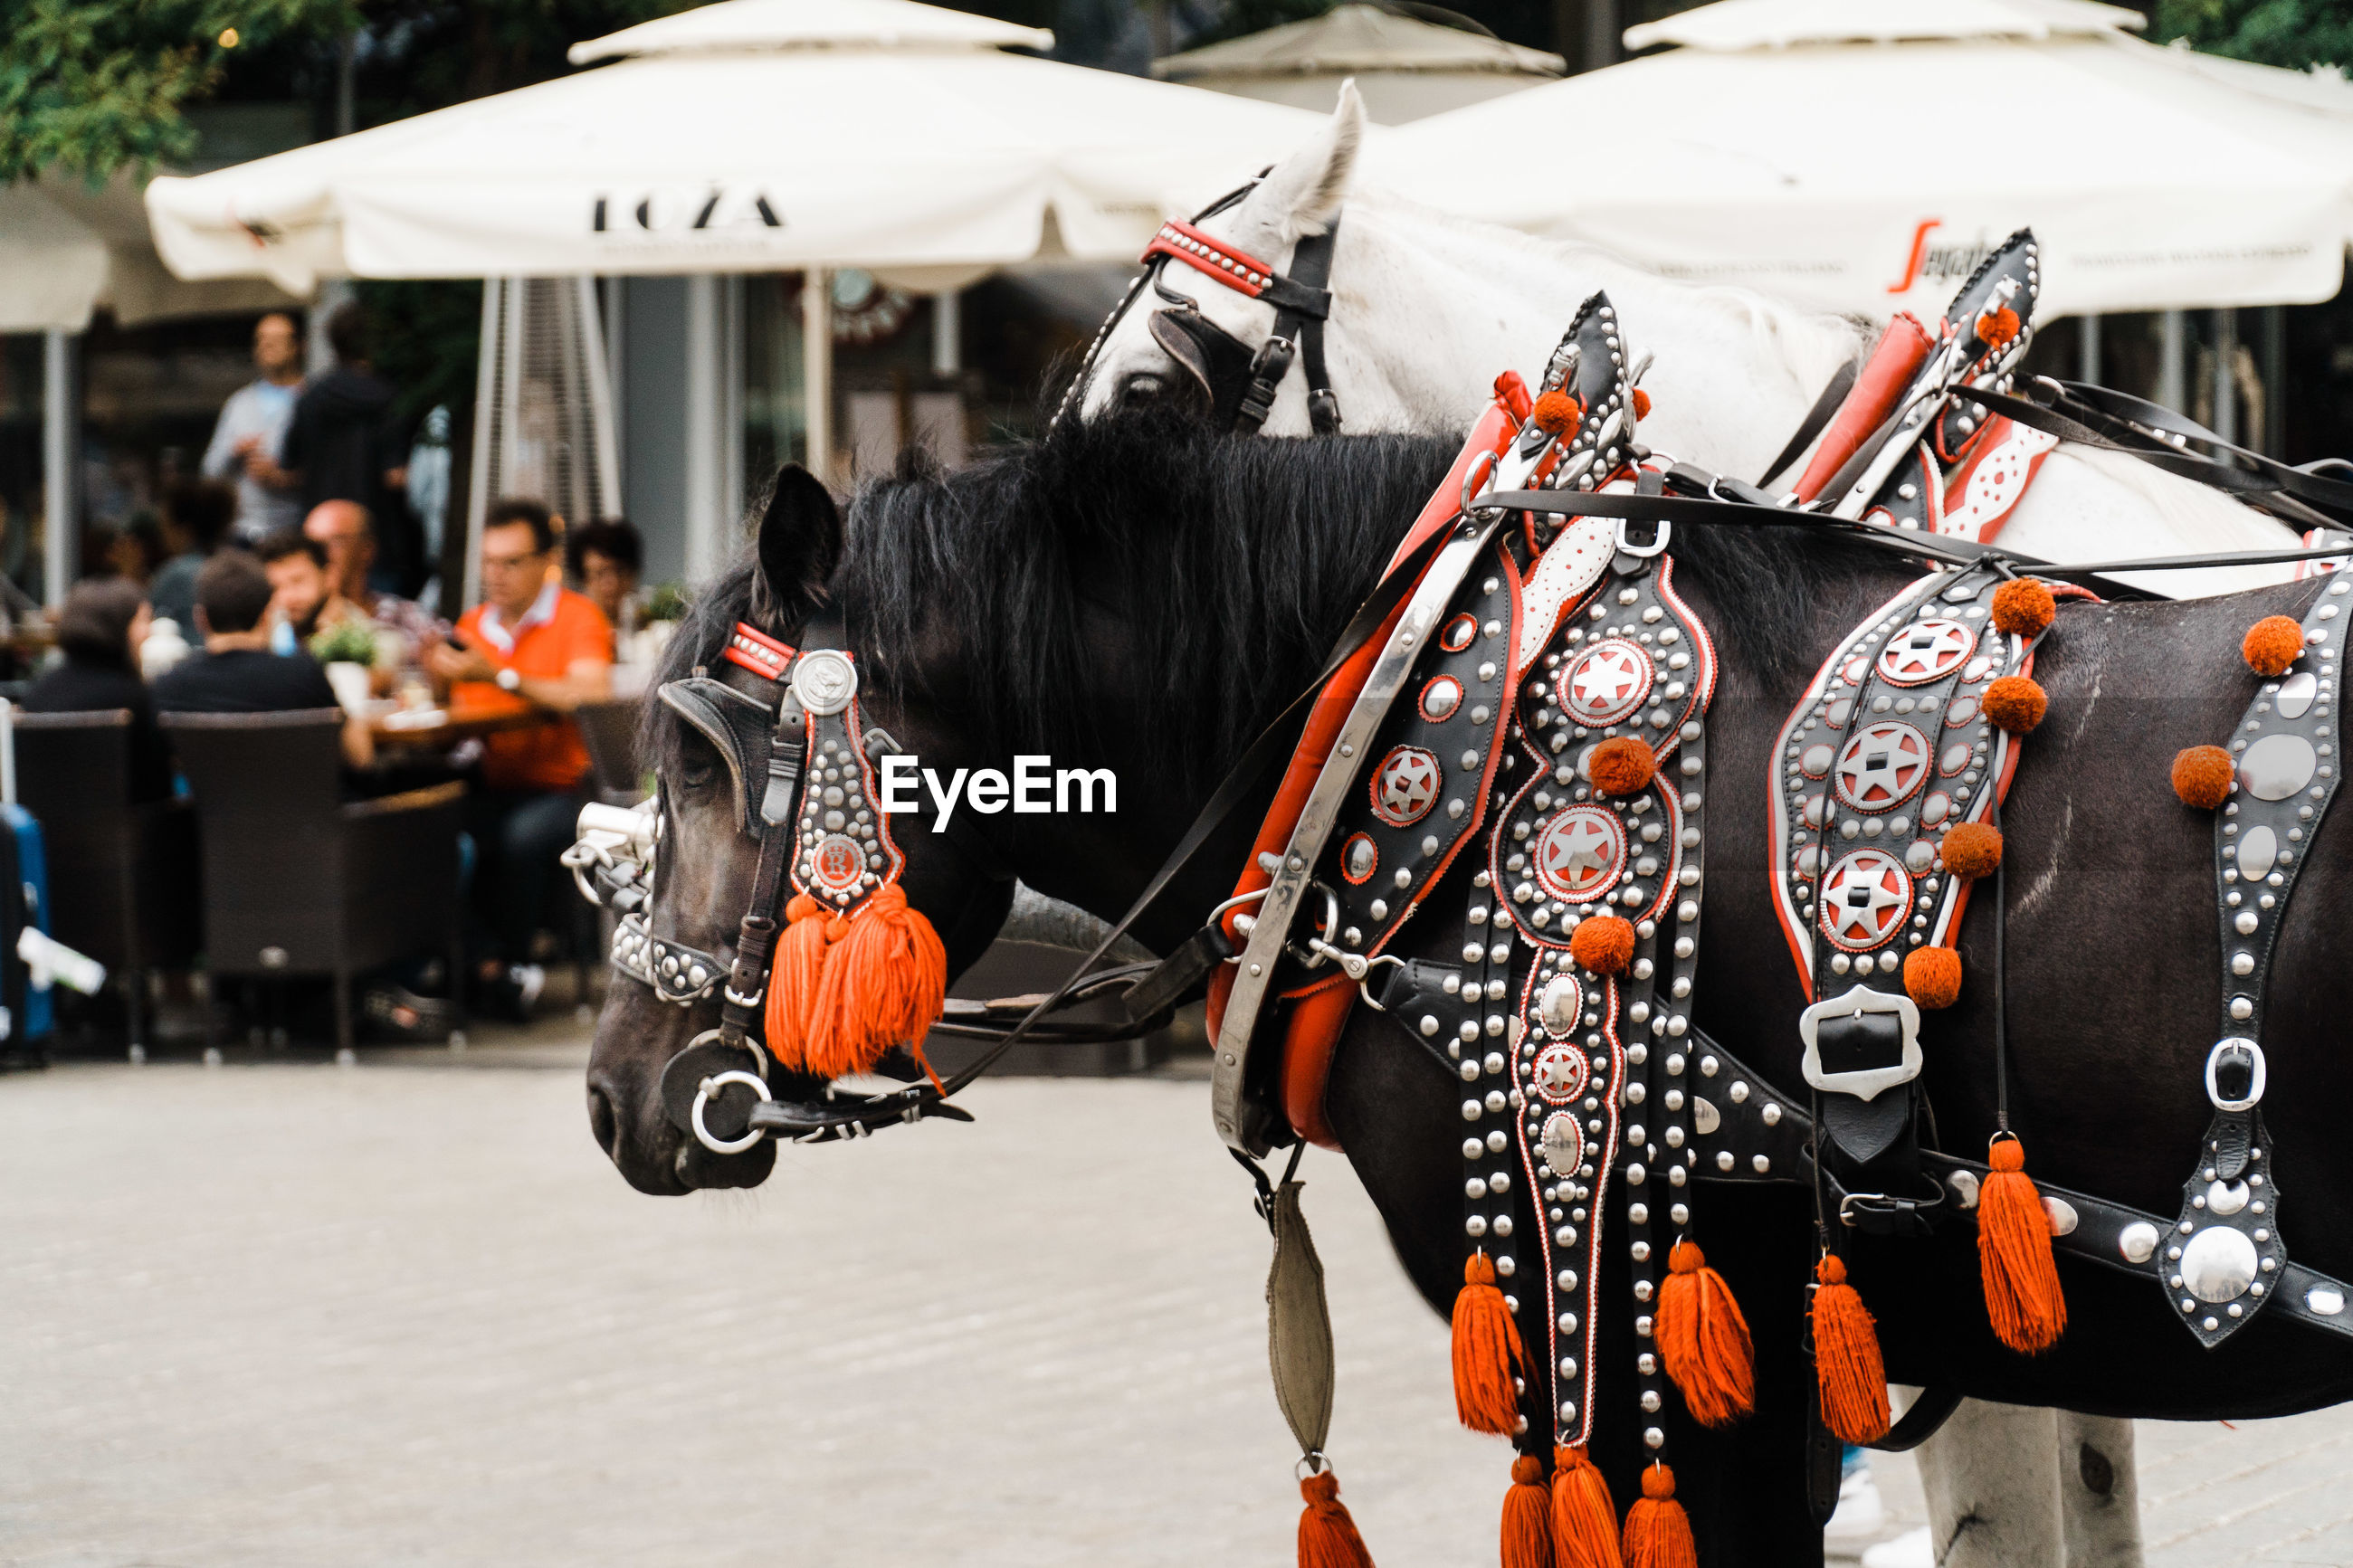 Strained horses with silver and red ornaments